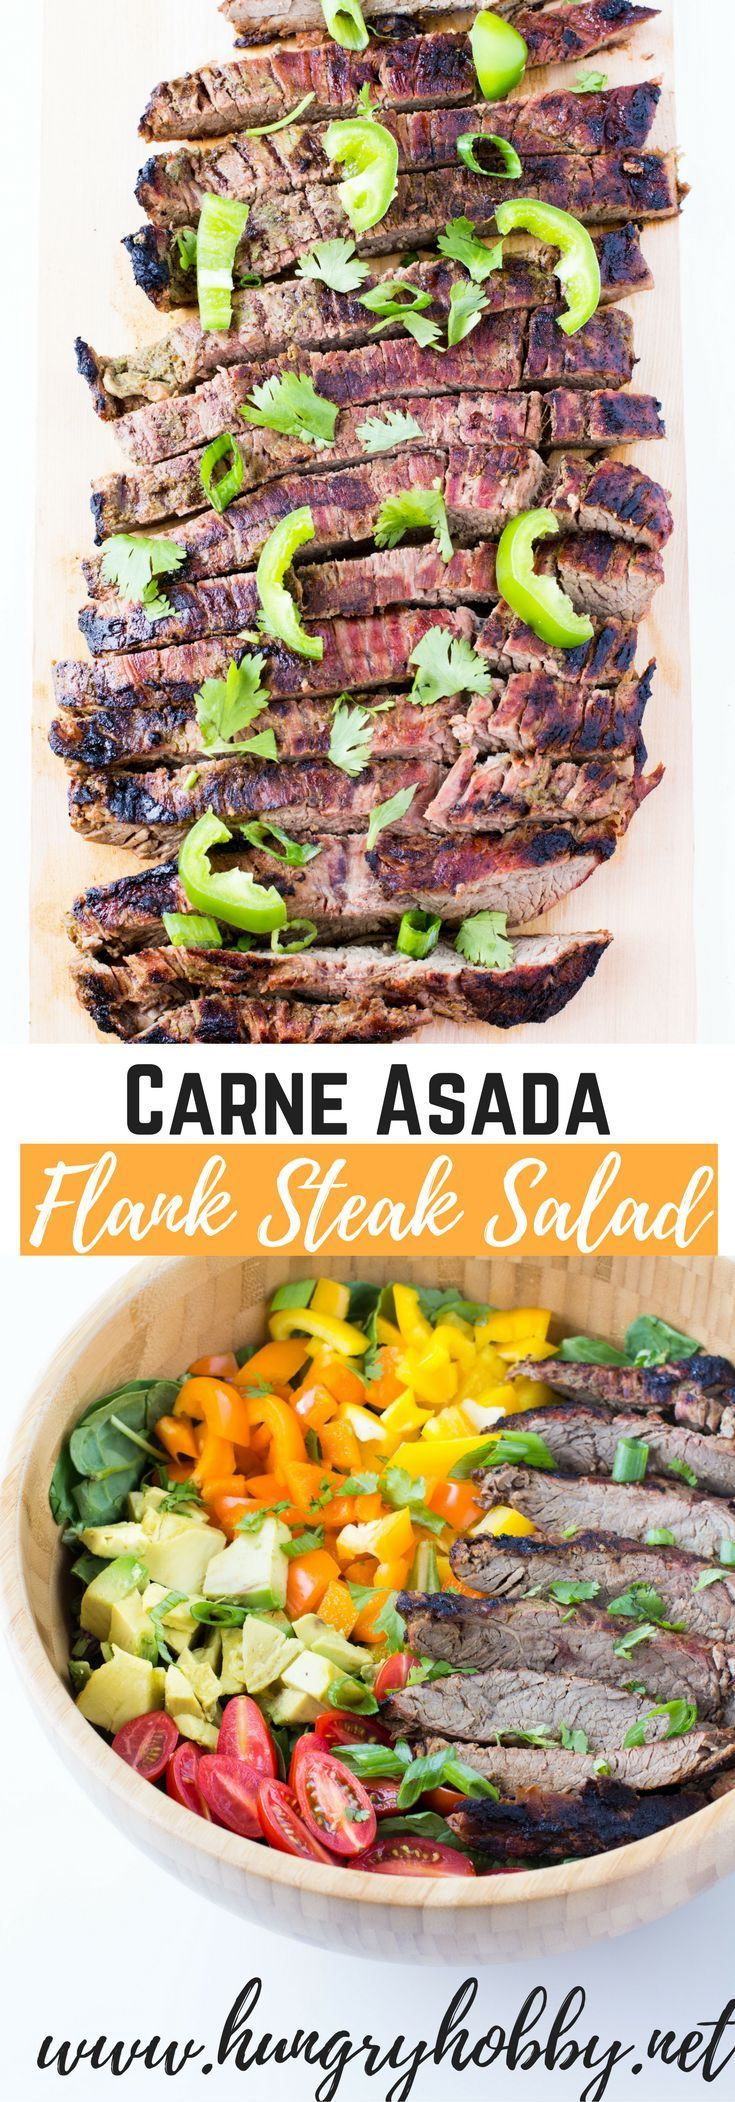 Carne Asada Flank Steak Salad is a flavorful way to enjoy the bold flavors of the grill and the cool crisp refreshing feeling of a chopped salad.  via @hungryhobby